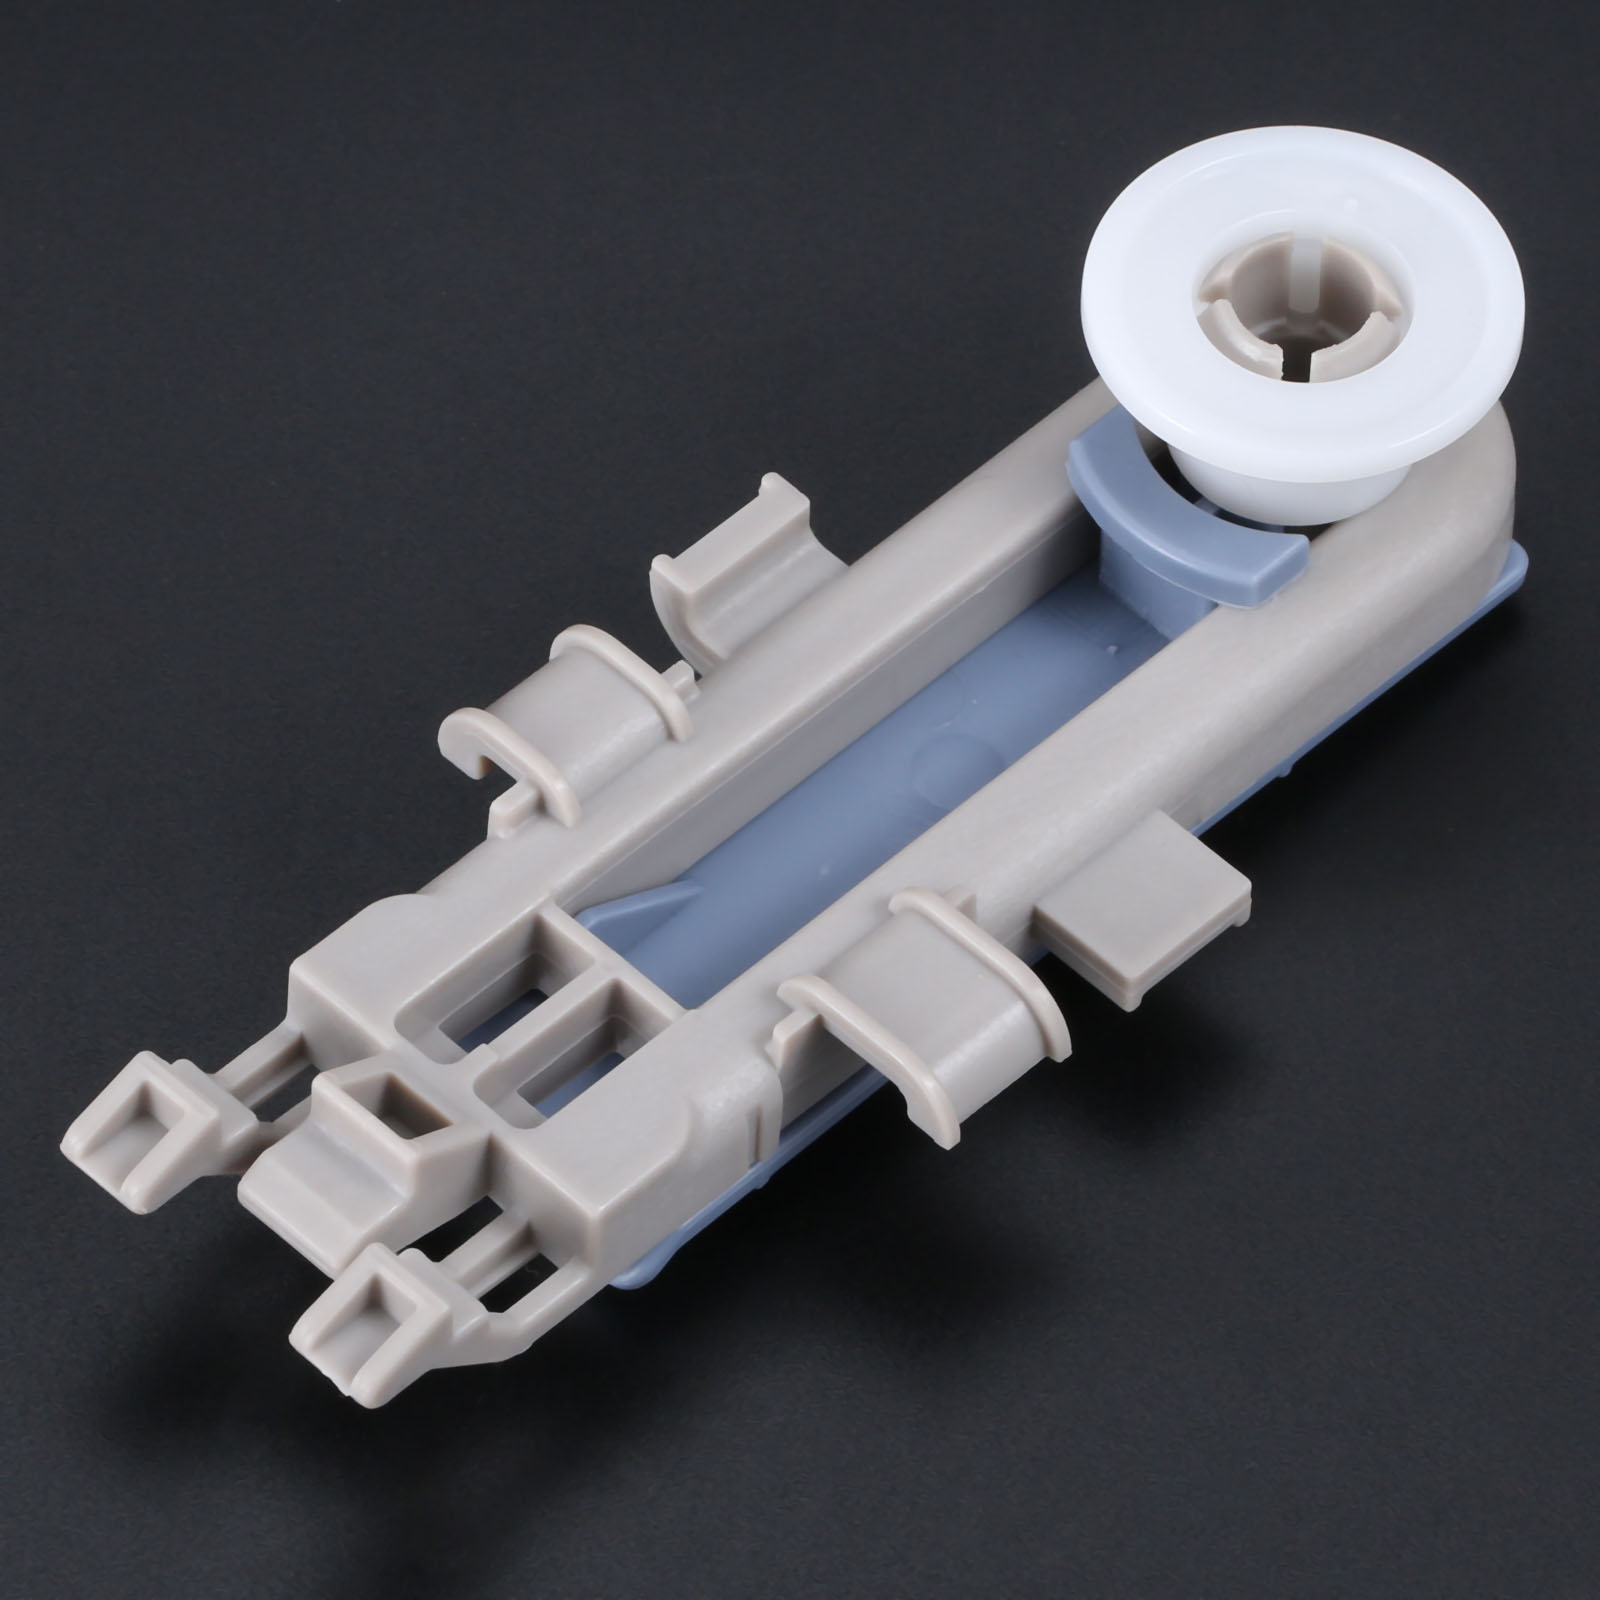 2Pcs W11157084 AP6285708 Dishwasher Upper Rack Wheel Mount Replacement Parts Fits for Whirlpool Washing Machine in Tool Parts from Tools